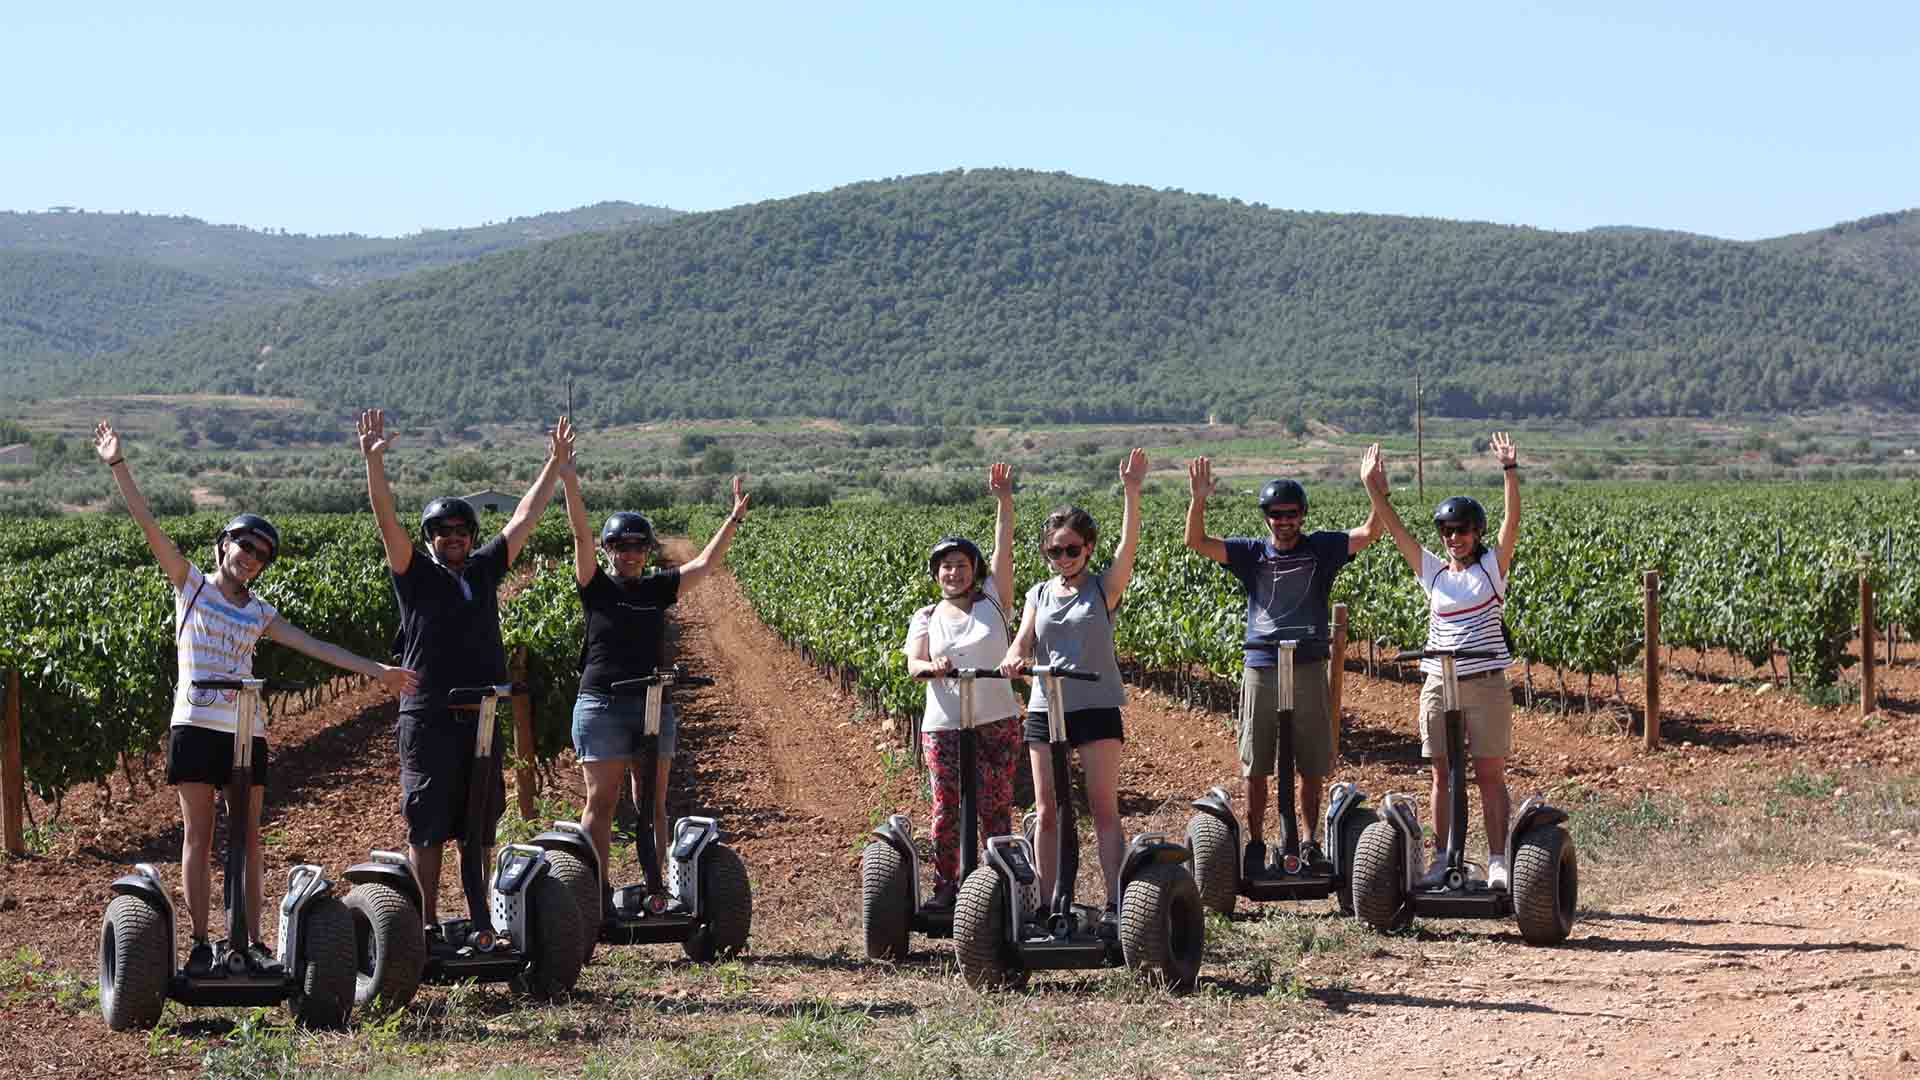 SEGWAY RIDING & WINE TOUR PENEDÉS